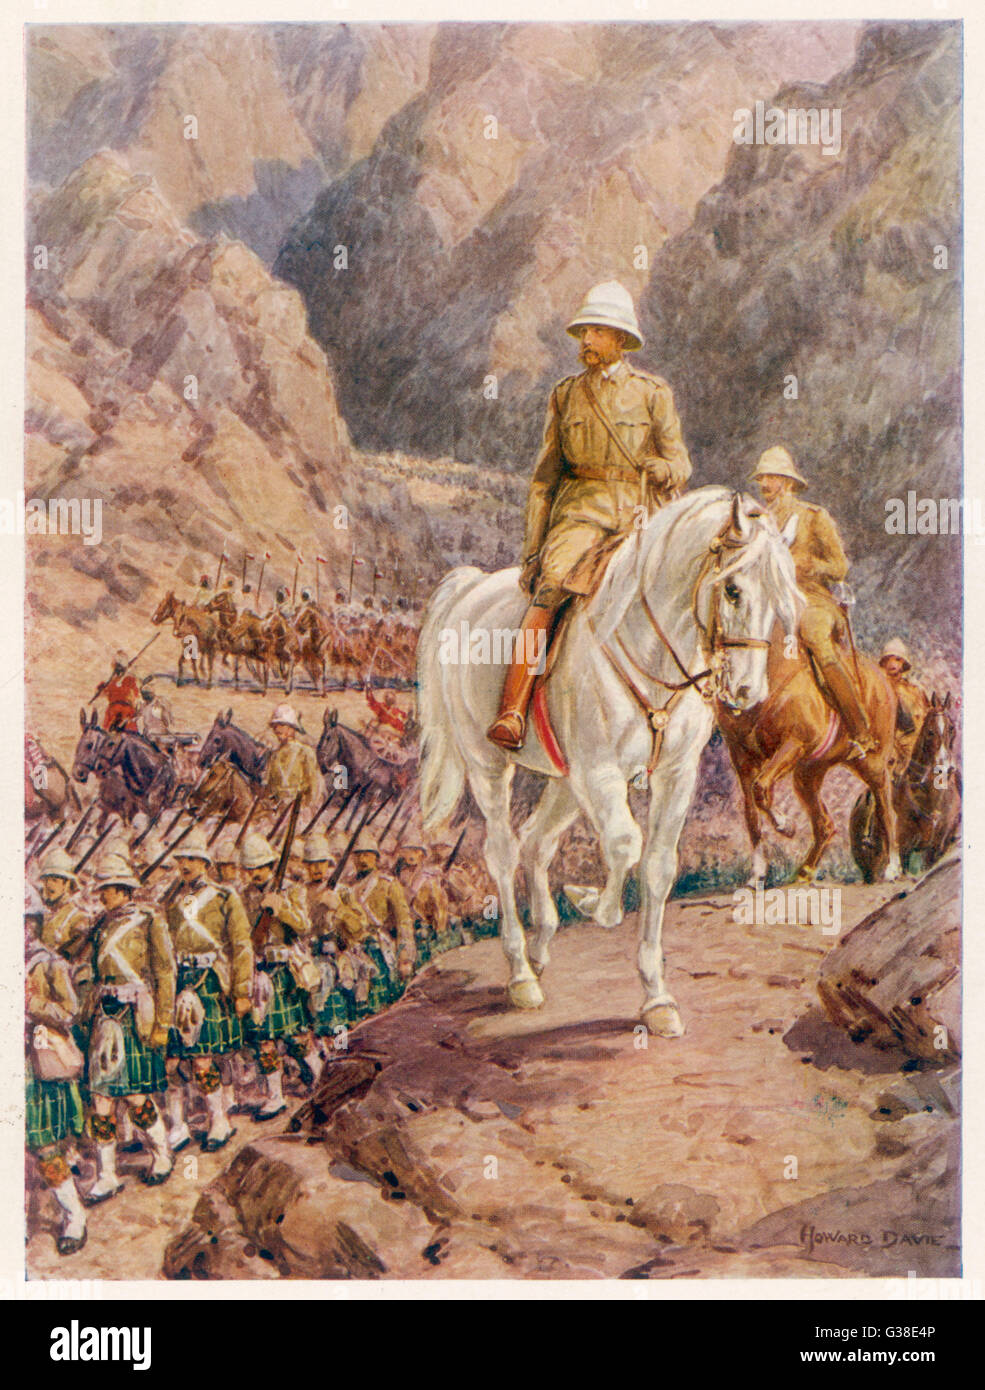 Lord Roberts on the march to  KANDAHAR, where the British  will inflict a decisive  victory on the Afghans,  dispersing - Stock Image